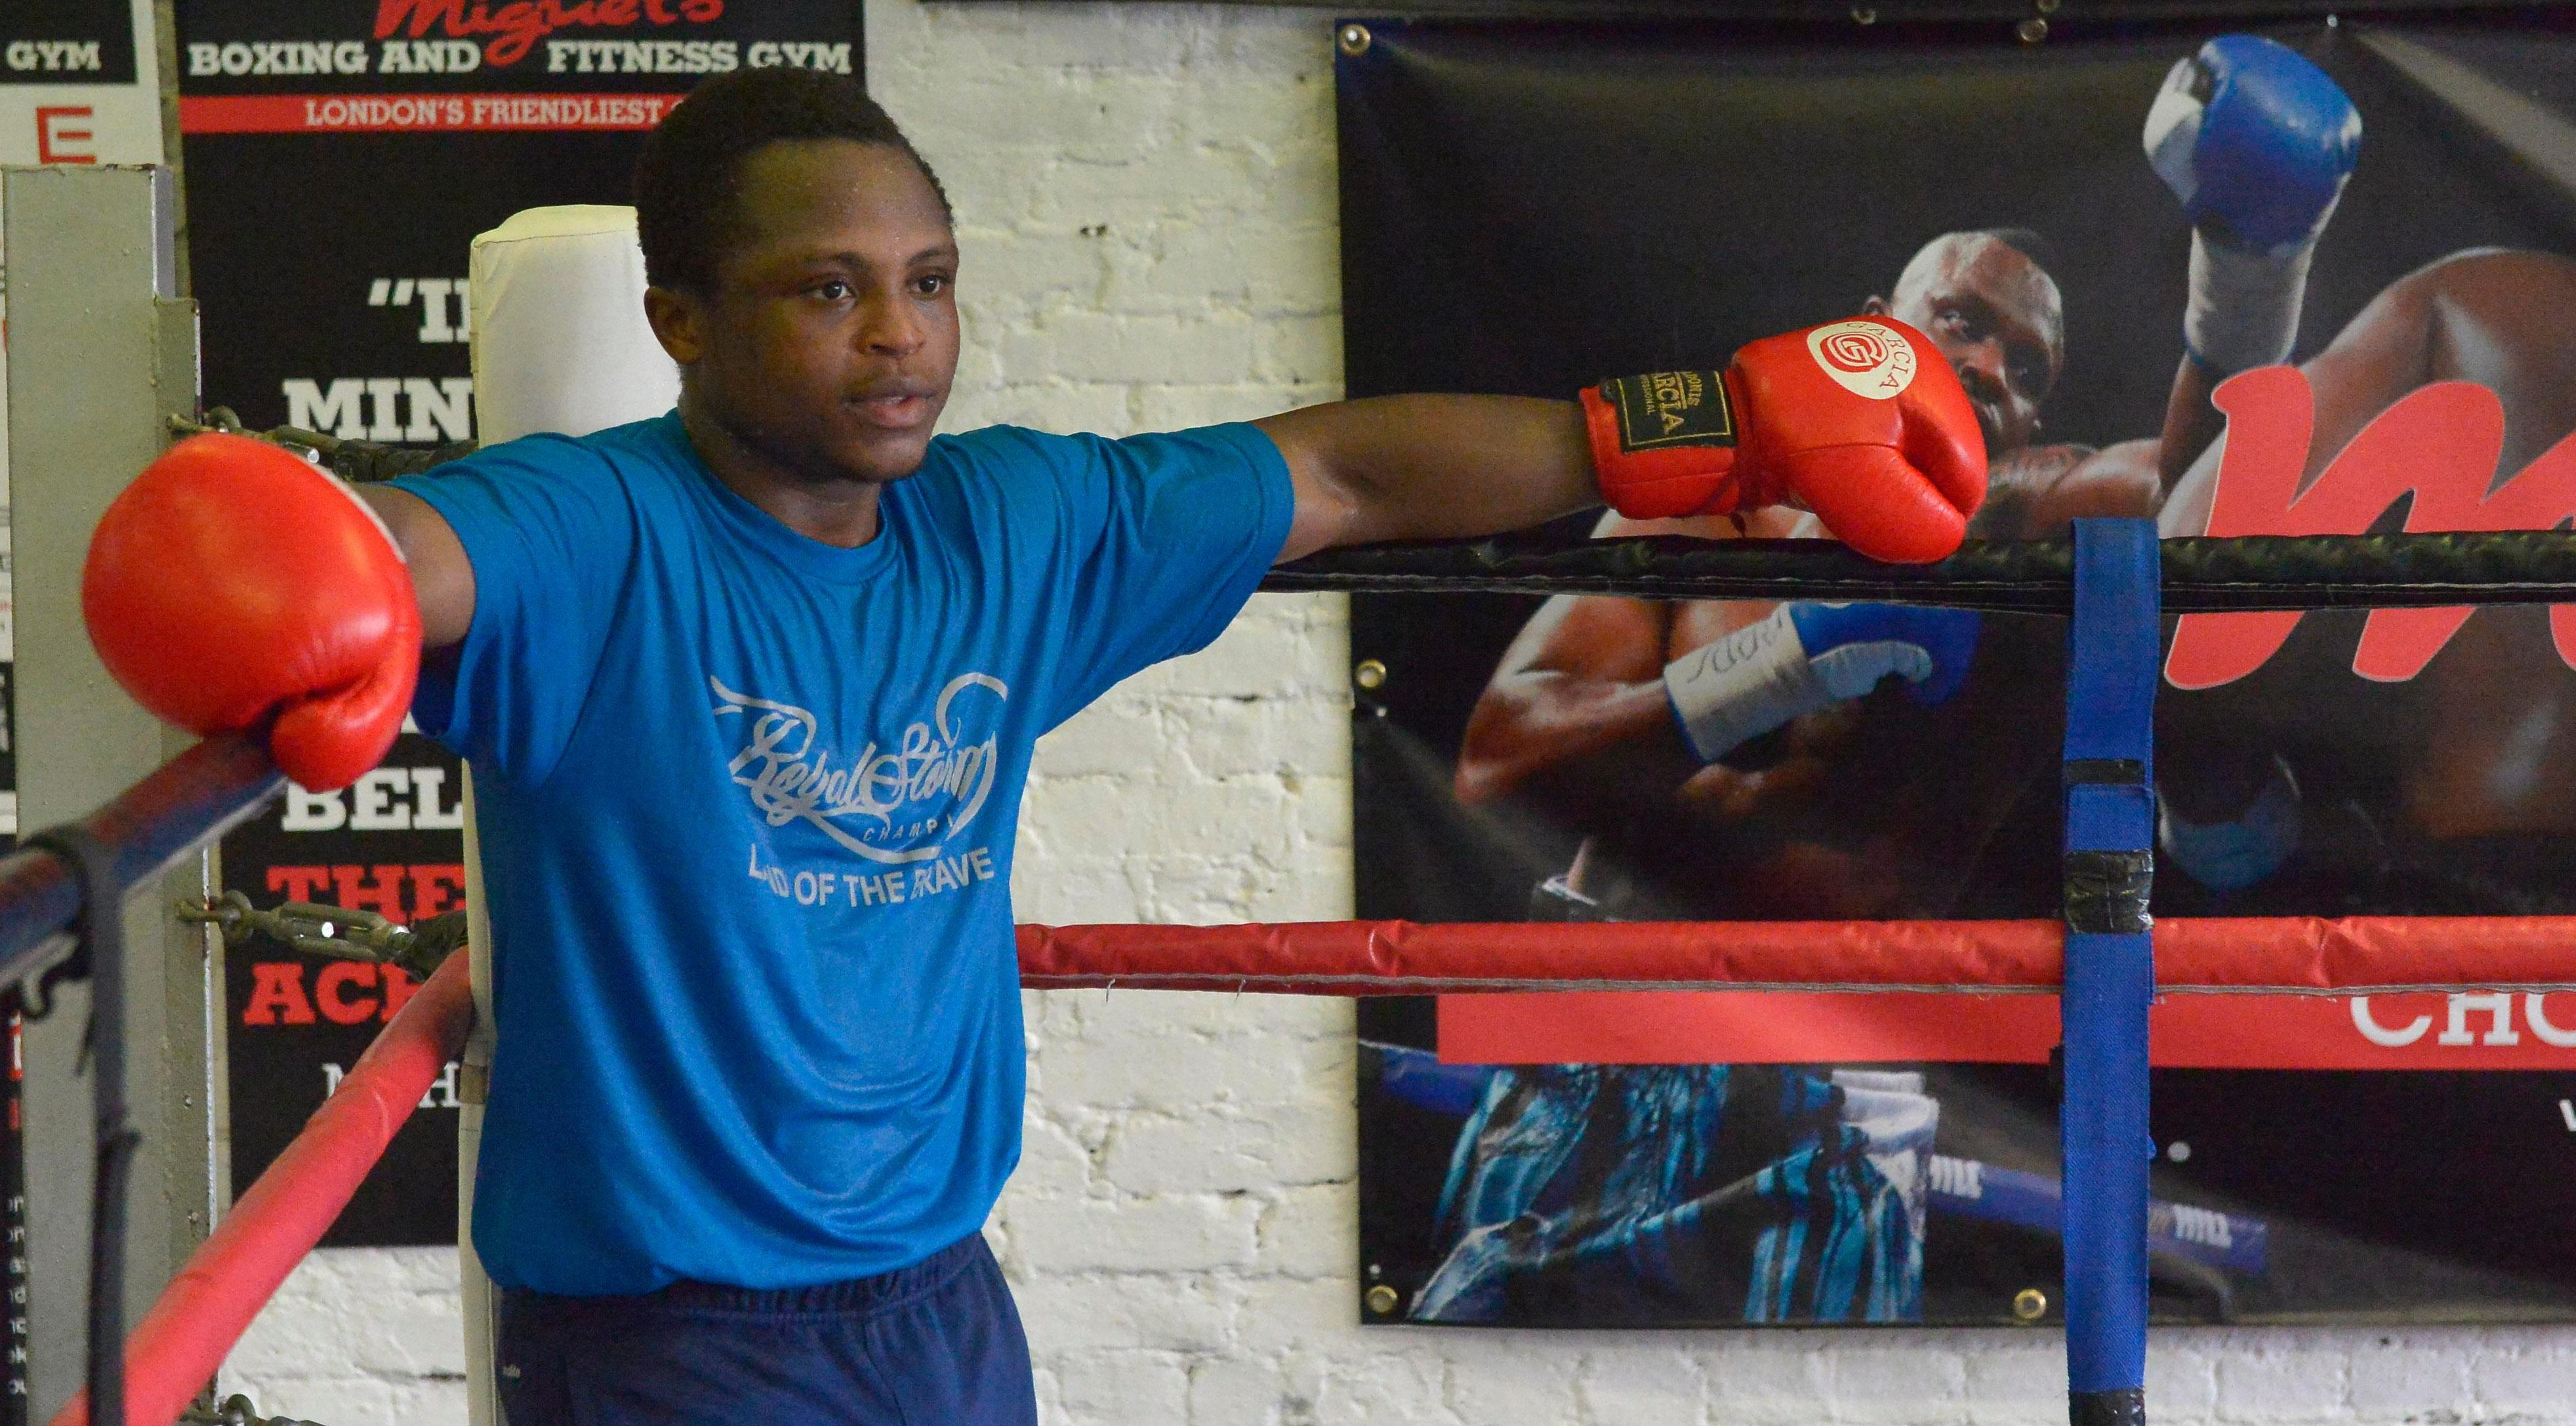 At Miguel's gym in Brixton, 5ft 4in Dogboe is a rapidly rising star